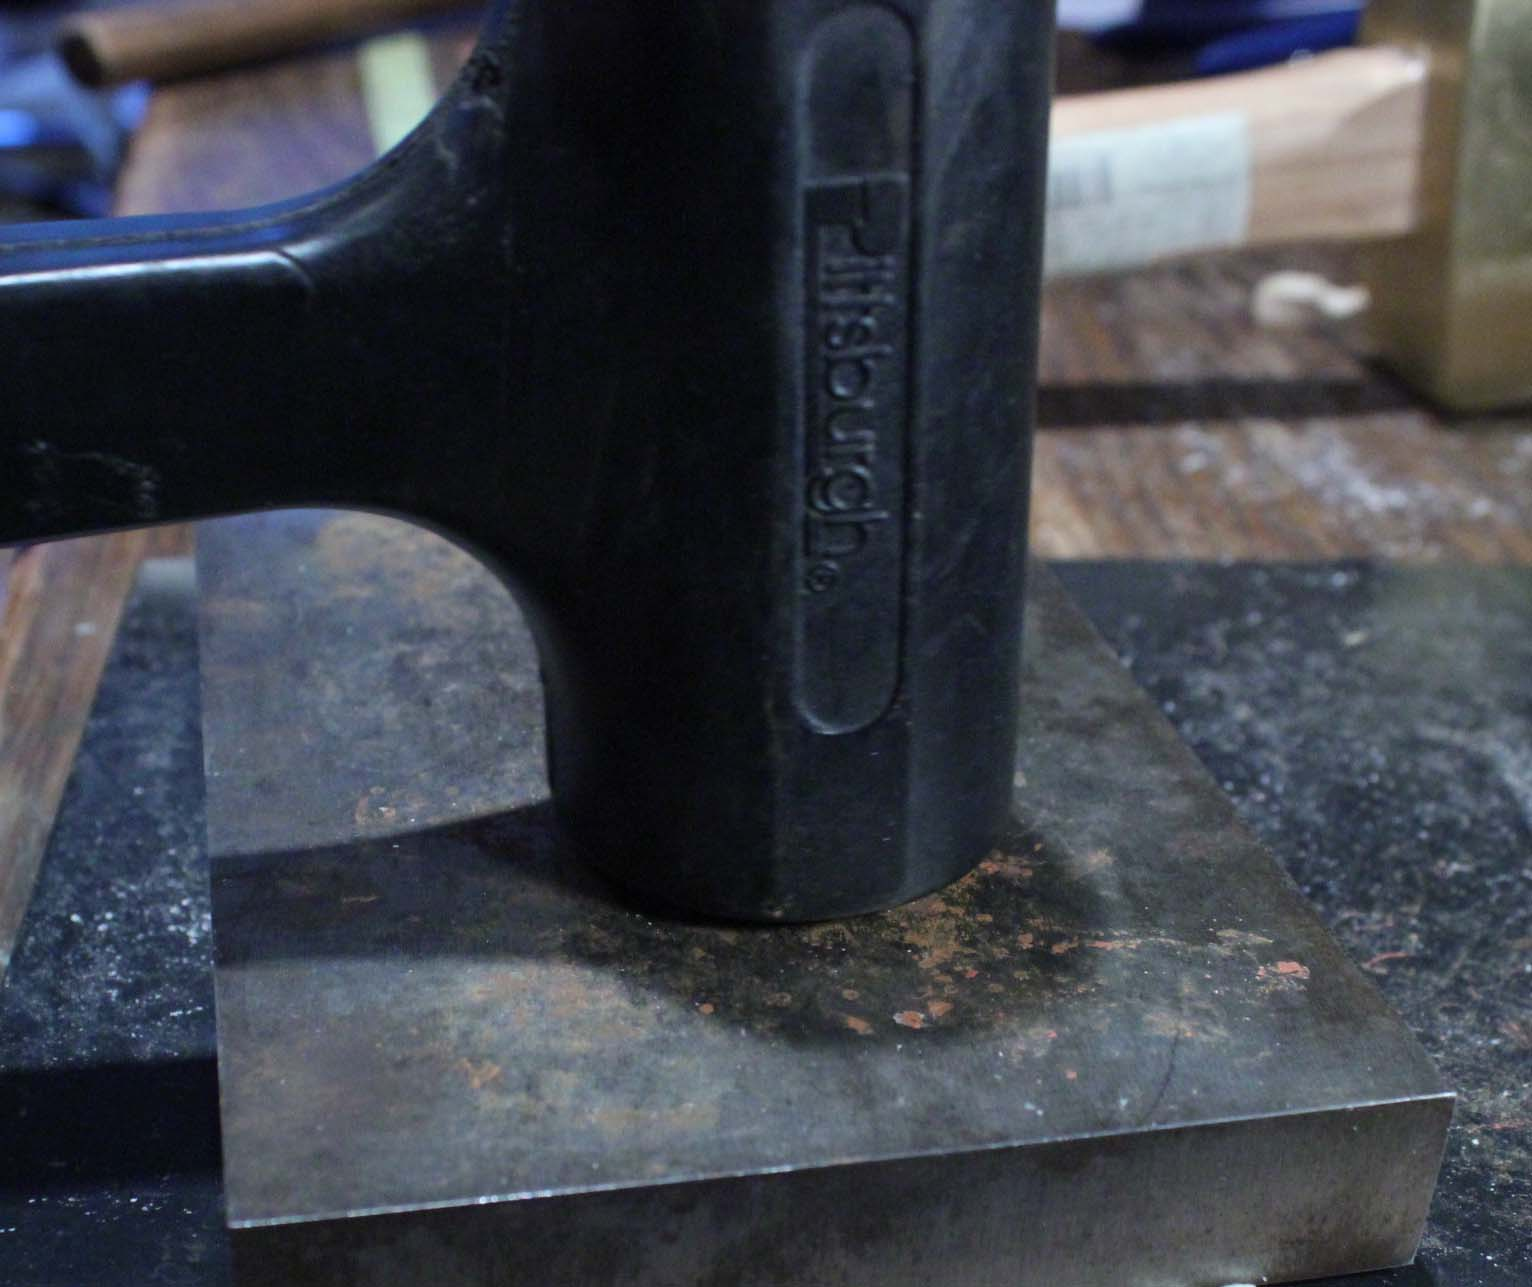 strike metal with rubber mallet